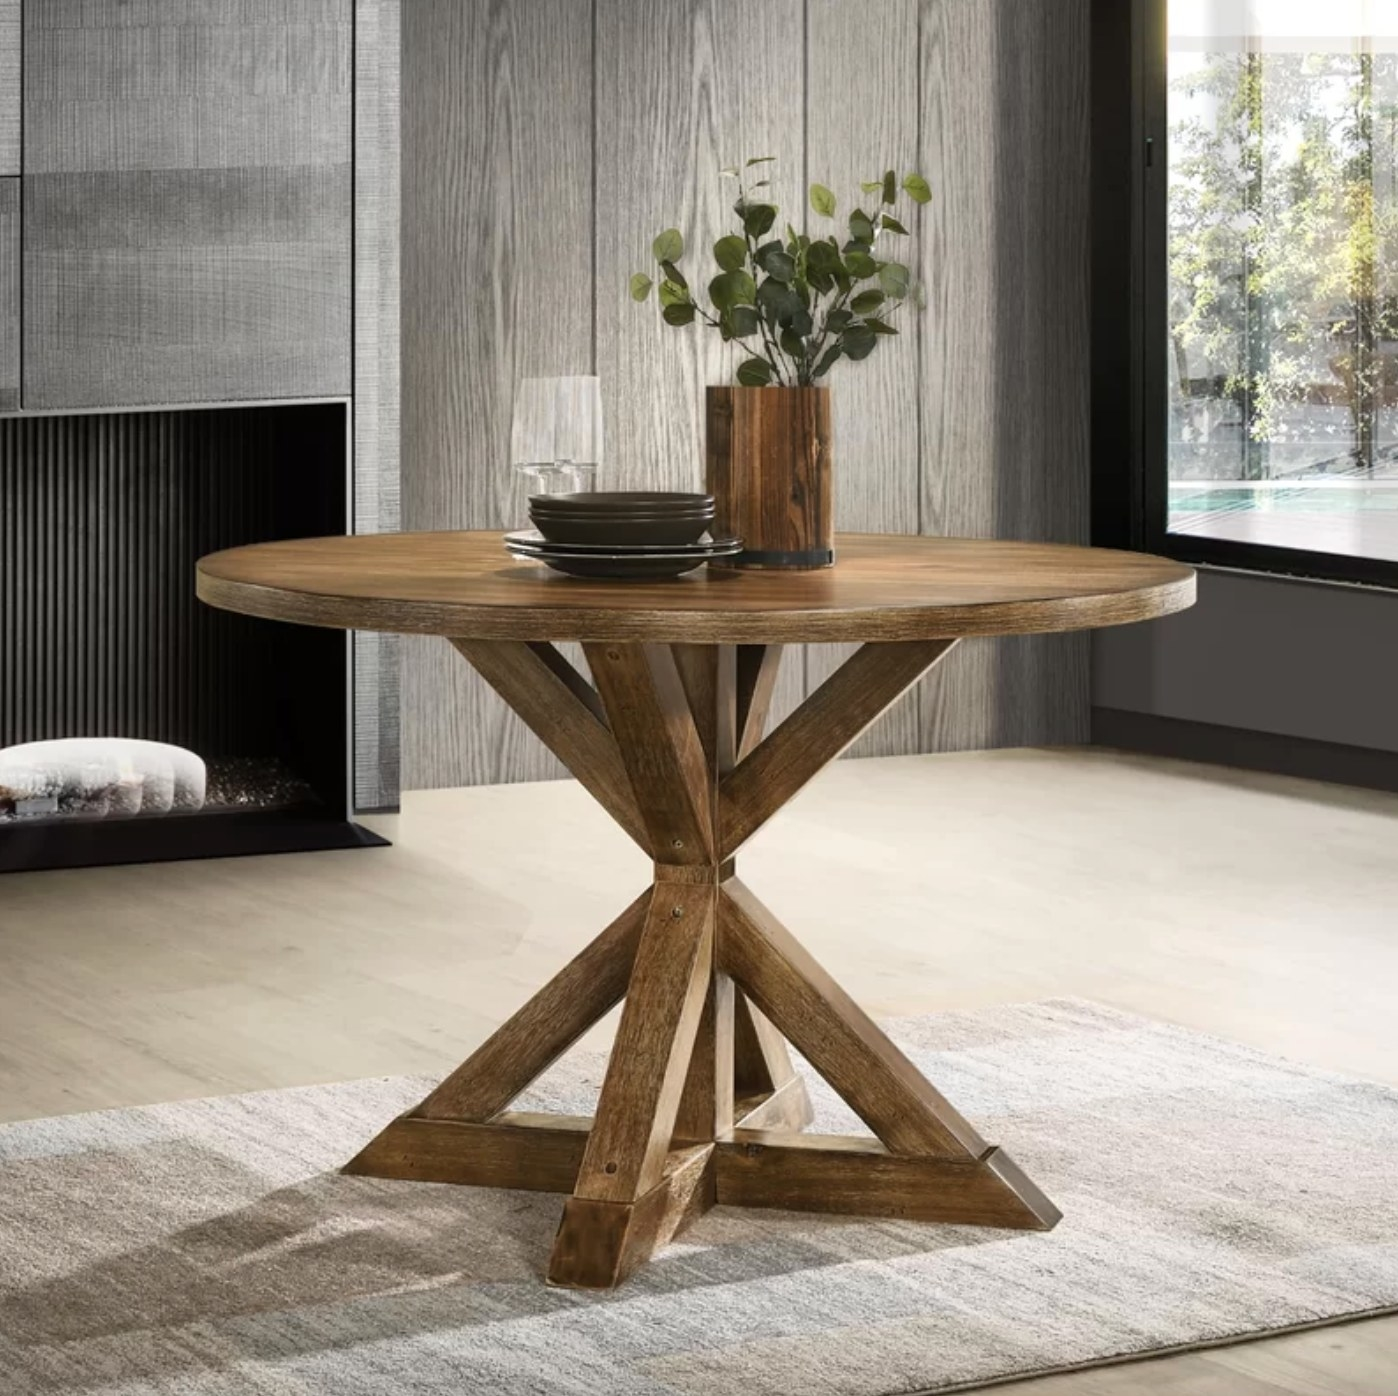 The small circular table